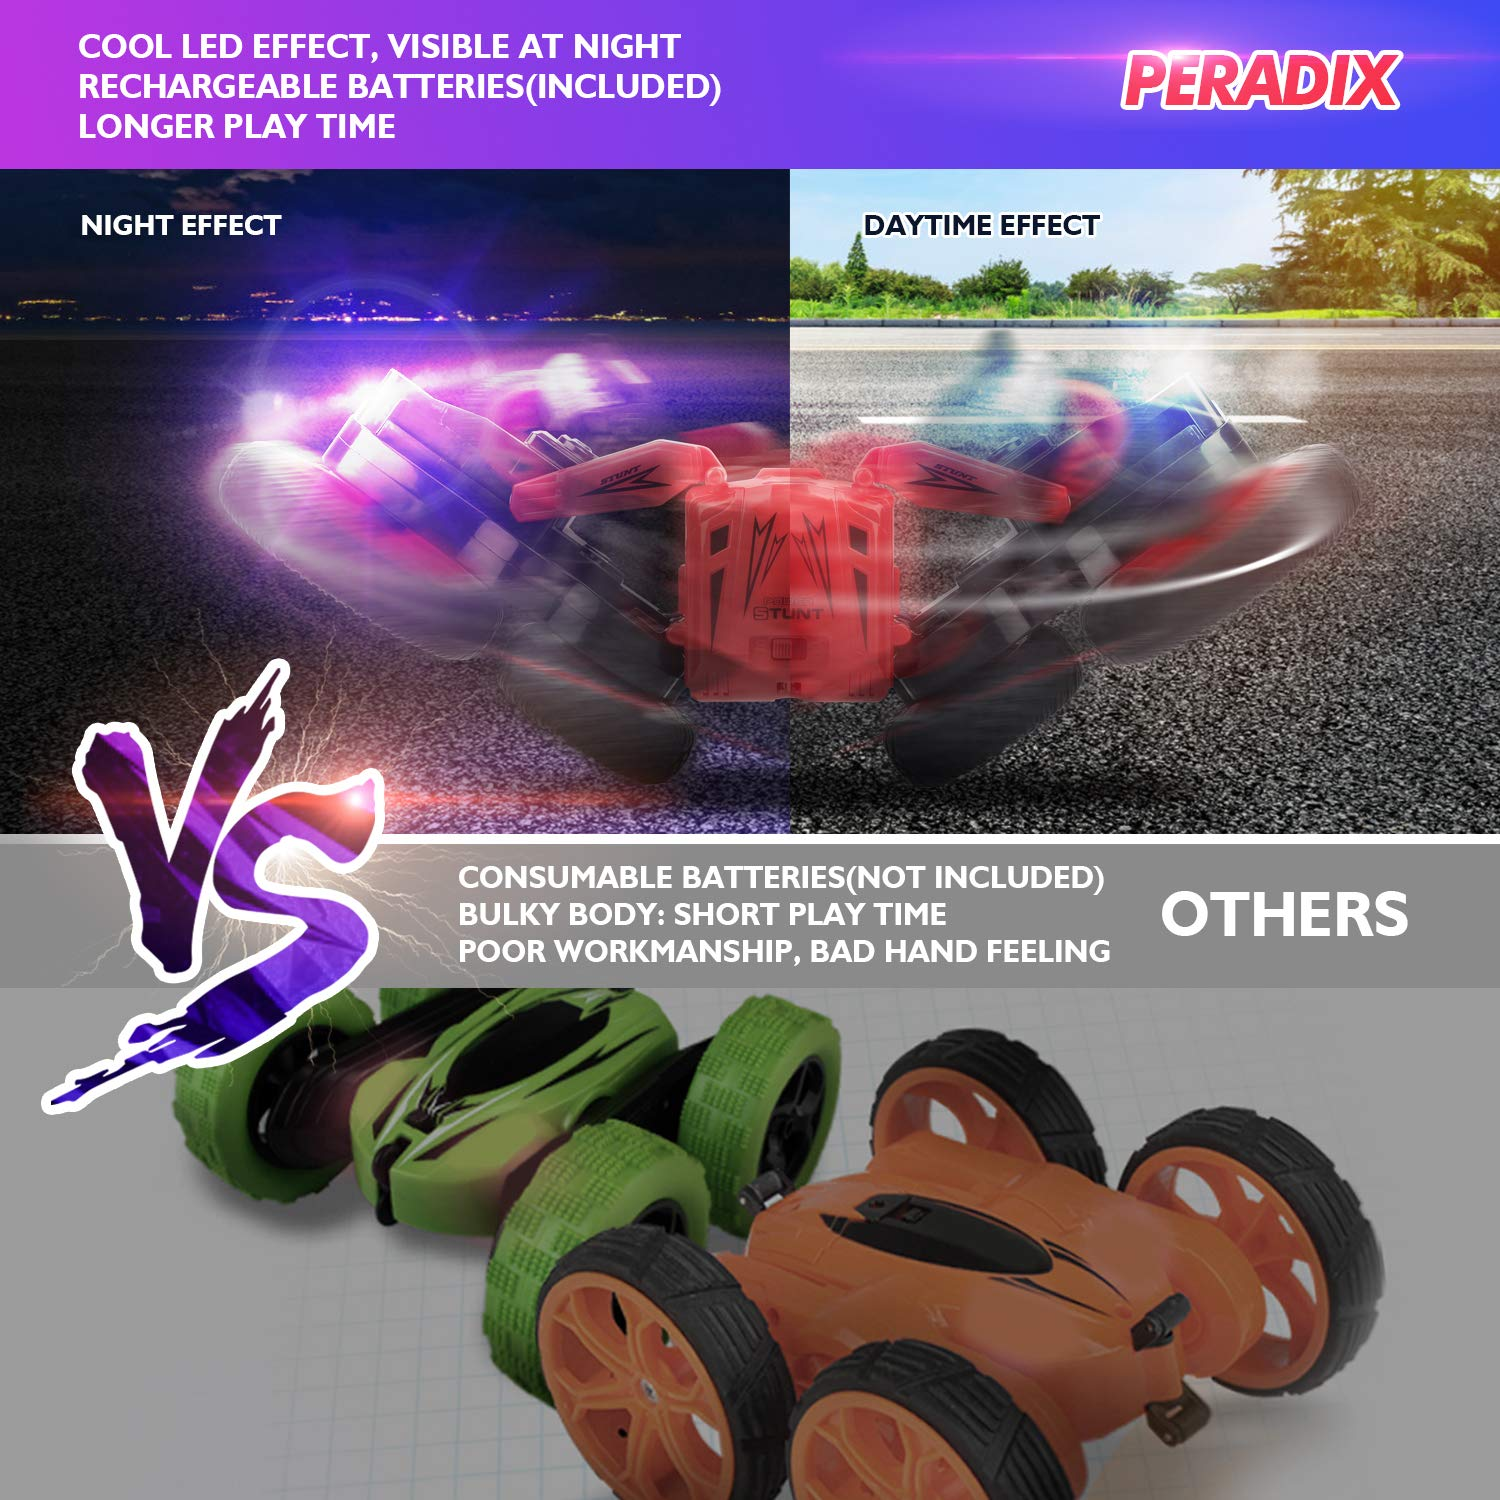 Peradix RC Stunt Car Remote Control Racing Car toy 4WD Double Sided 360 Degree Spins and Flips with LED Lights Cars Toys for boys Children /Kids(Black-Red Stunt car)